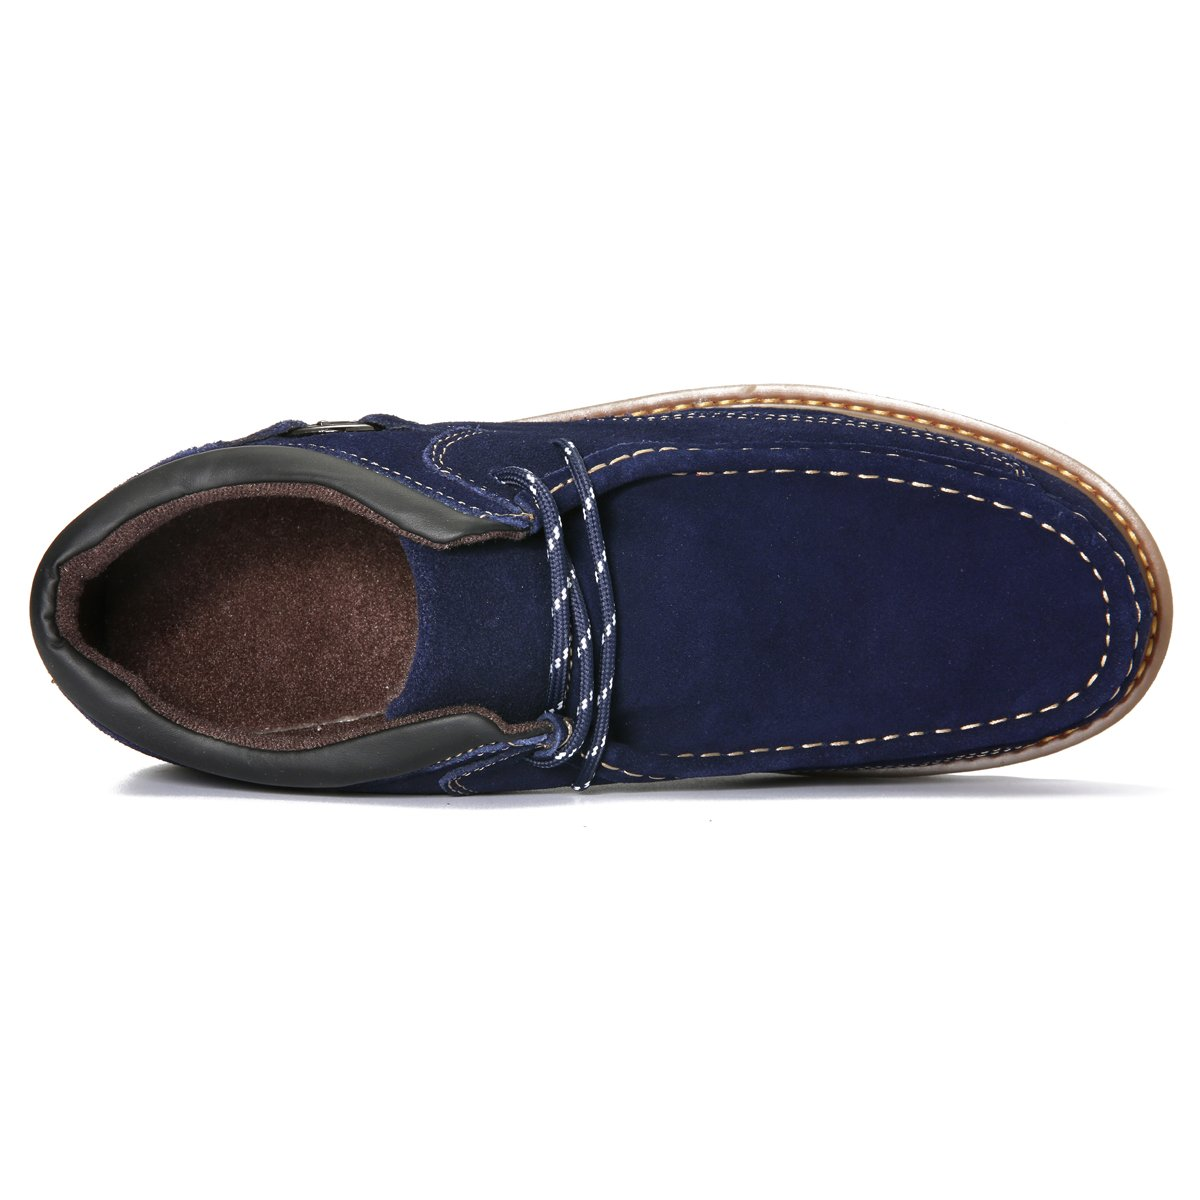 pretty nice 642e7 37d79 Amazon.com   gracosy Suede Casual Shoes, Men Classic Retro Sewing Boots,  Lace Up Leather Casual Shoes   Oxfords